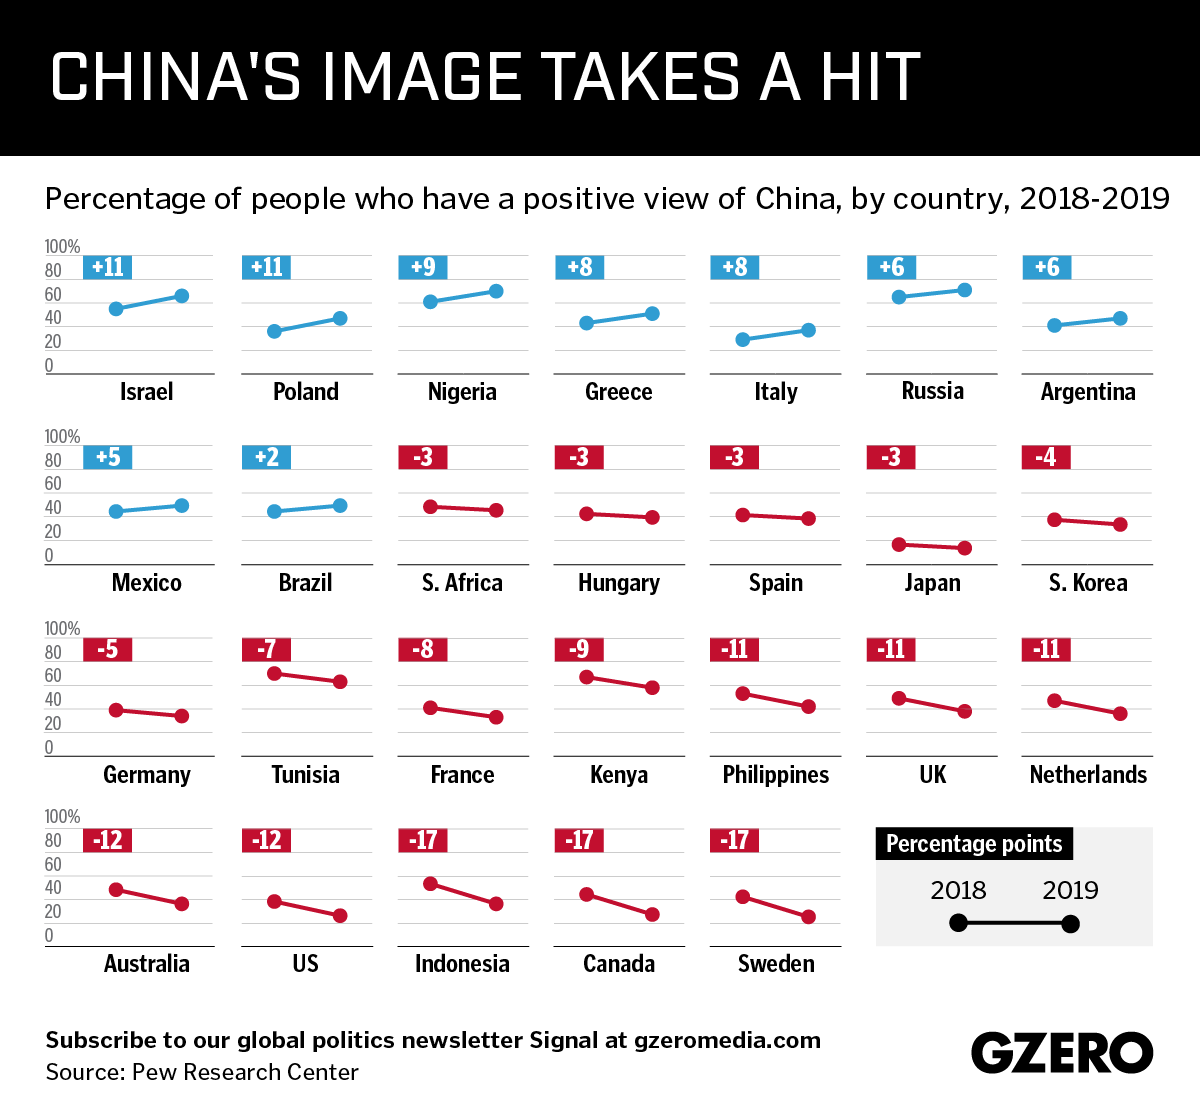 Graphic Truth: China's Image Takes a Hit